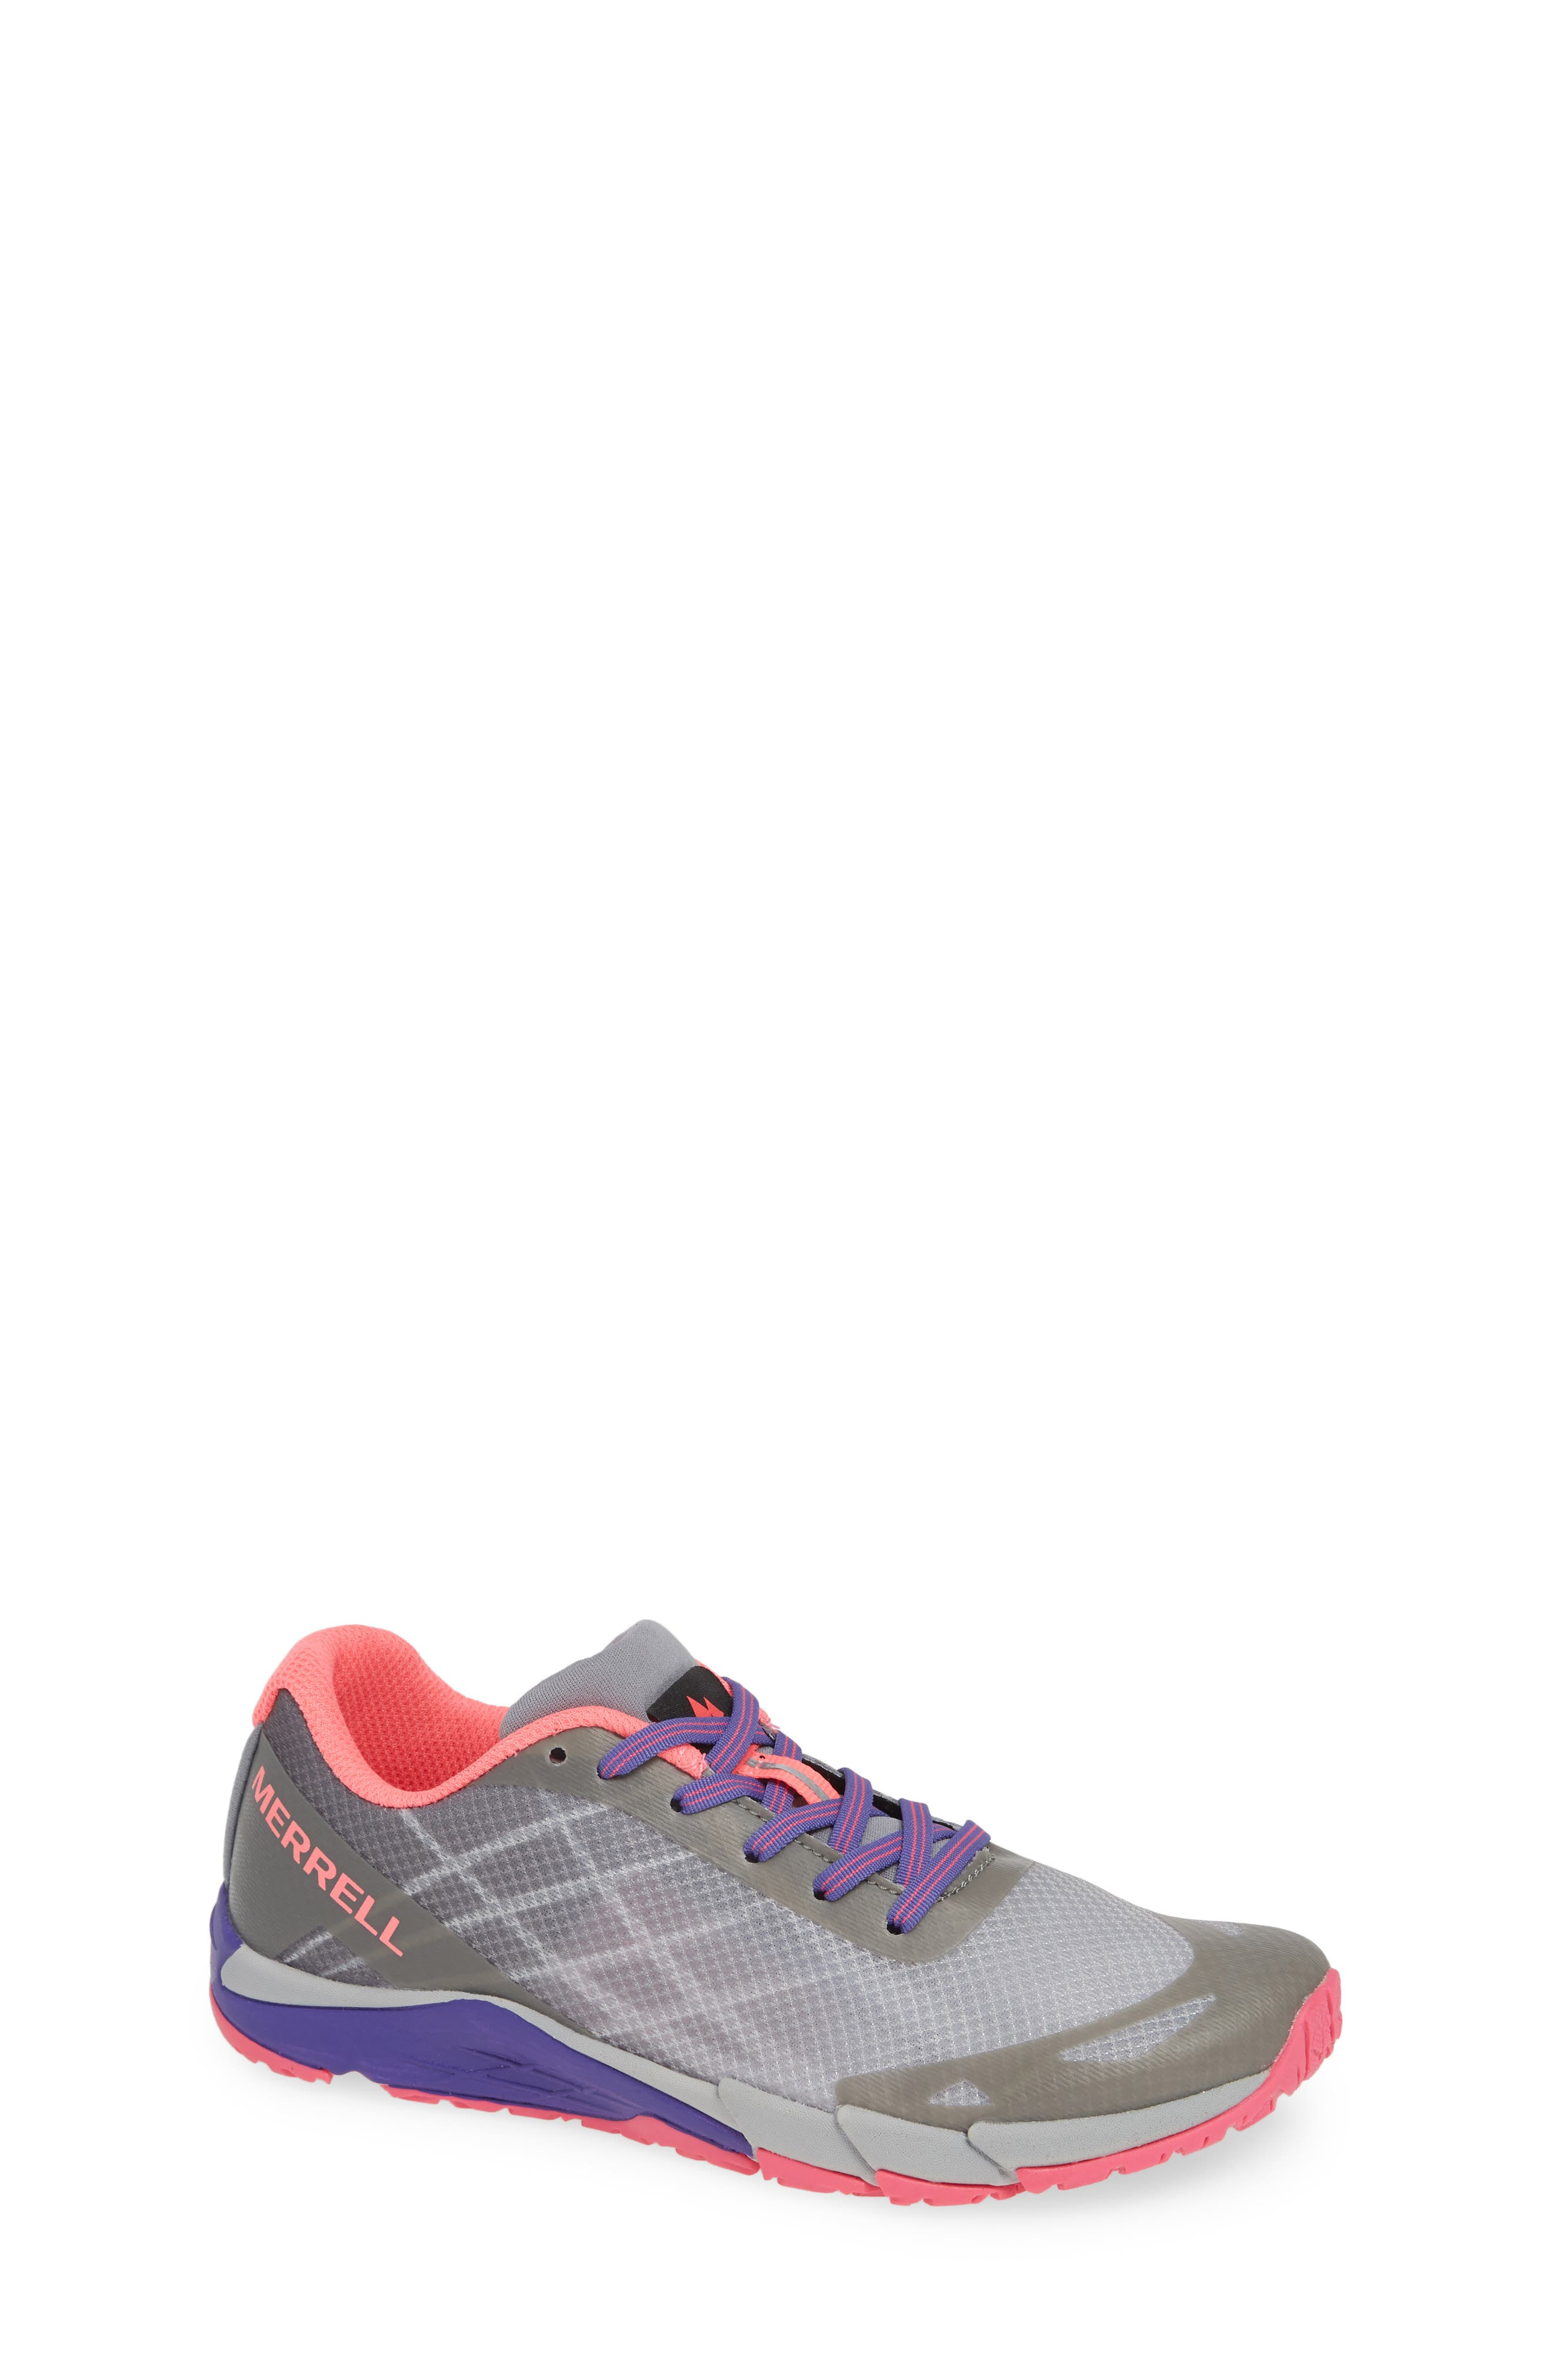 Toddler Merrell Bare Access Sneaker Size 12 M  Grey